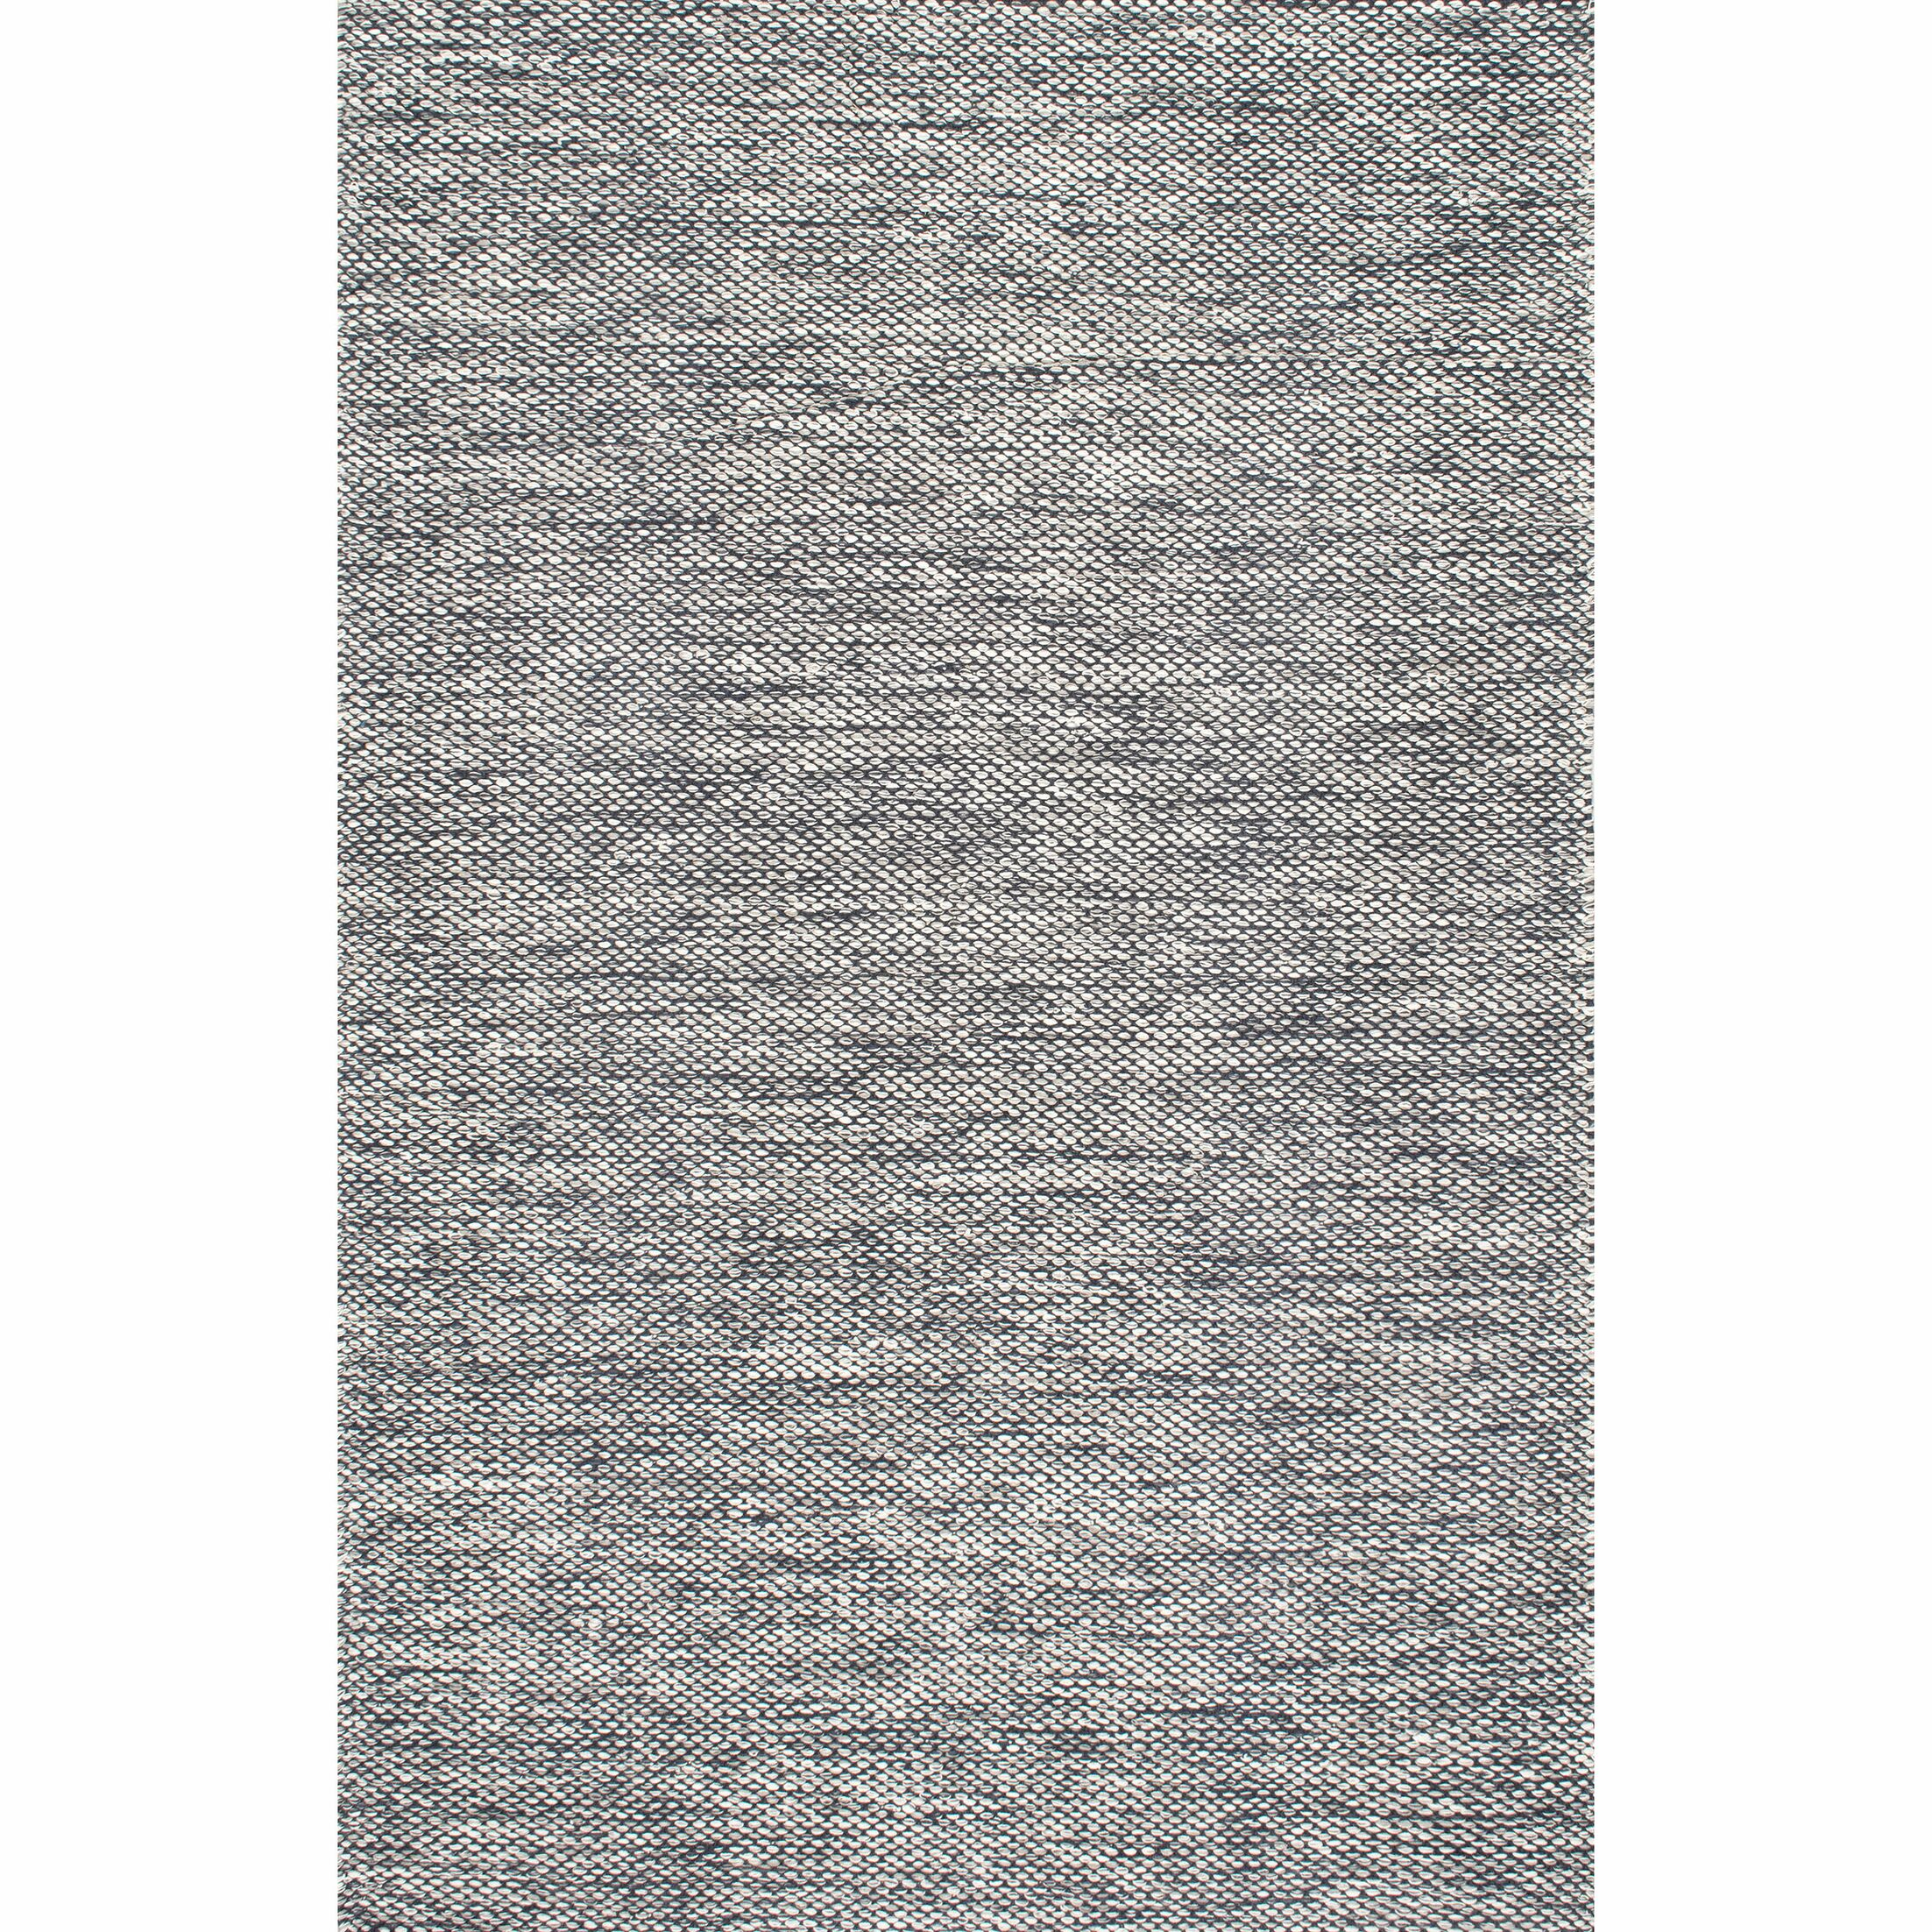 Parnell Hand-Woven Gray Area Rug Rug Size: Rectangle 8'6